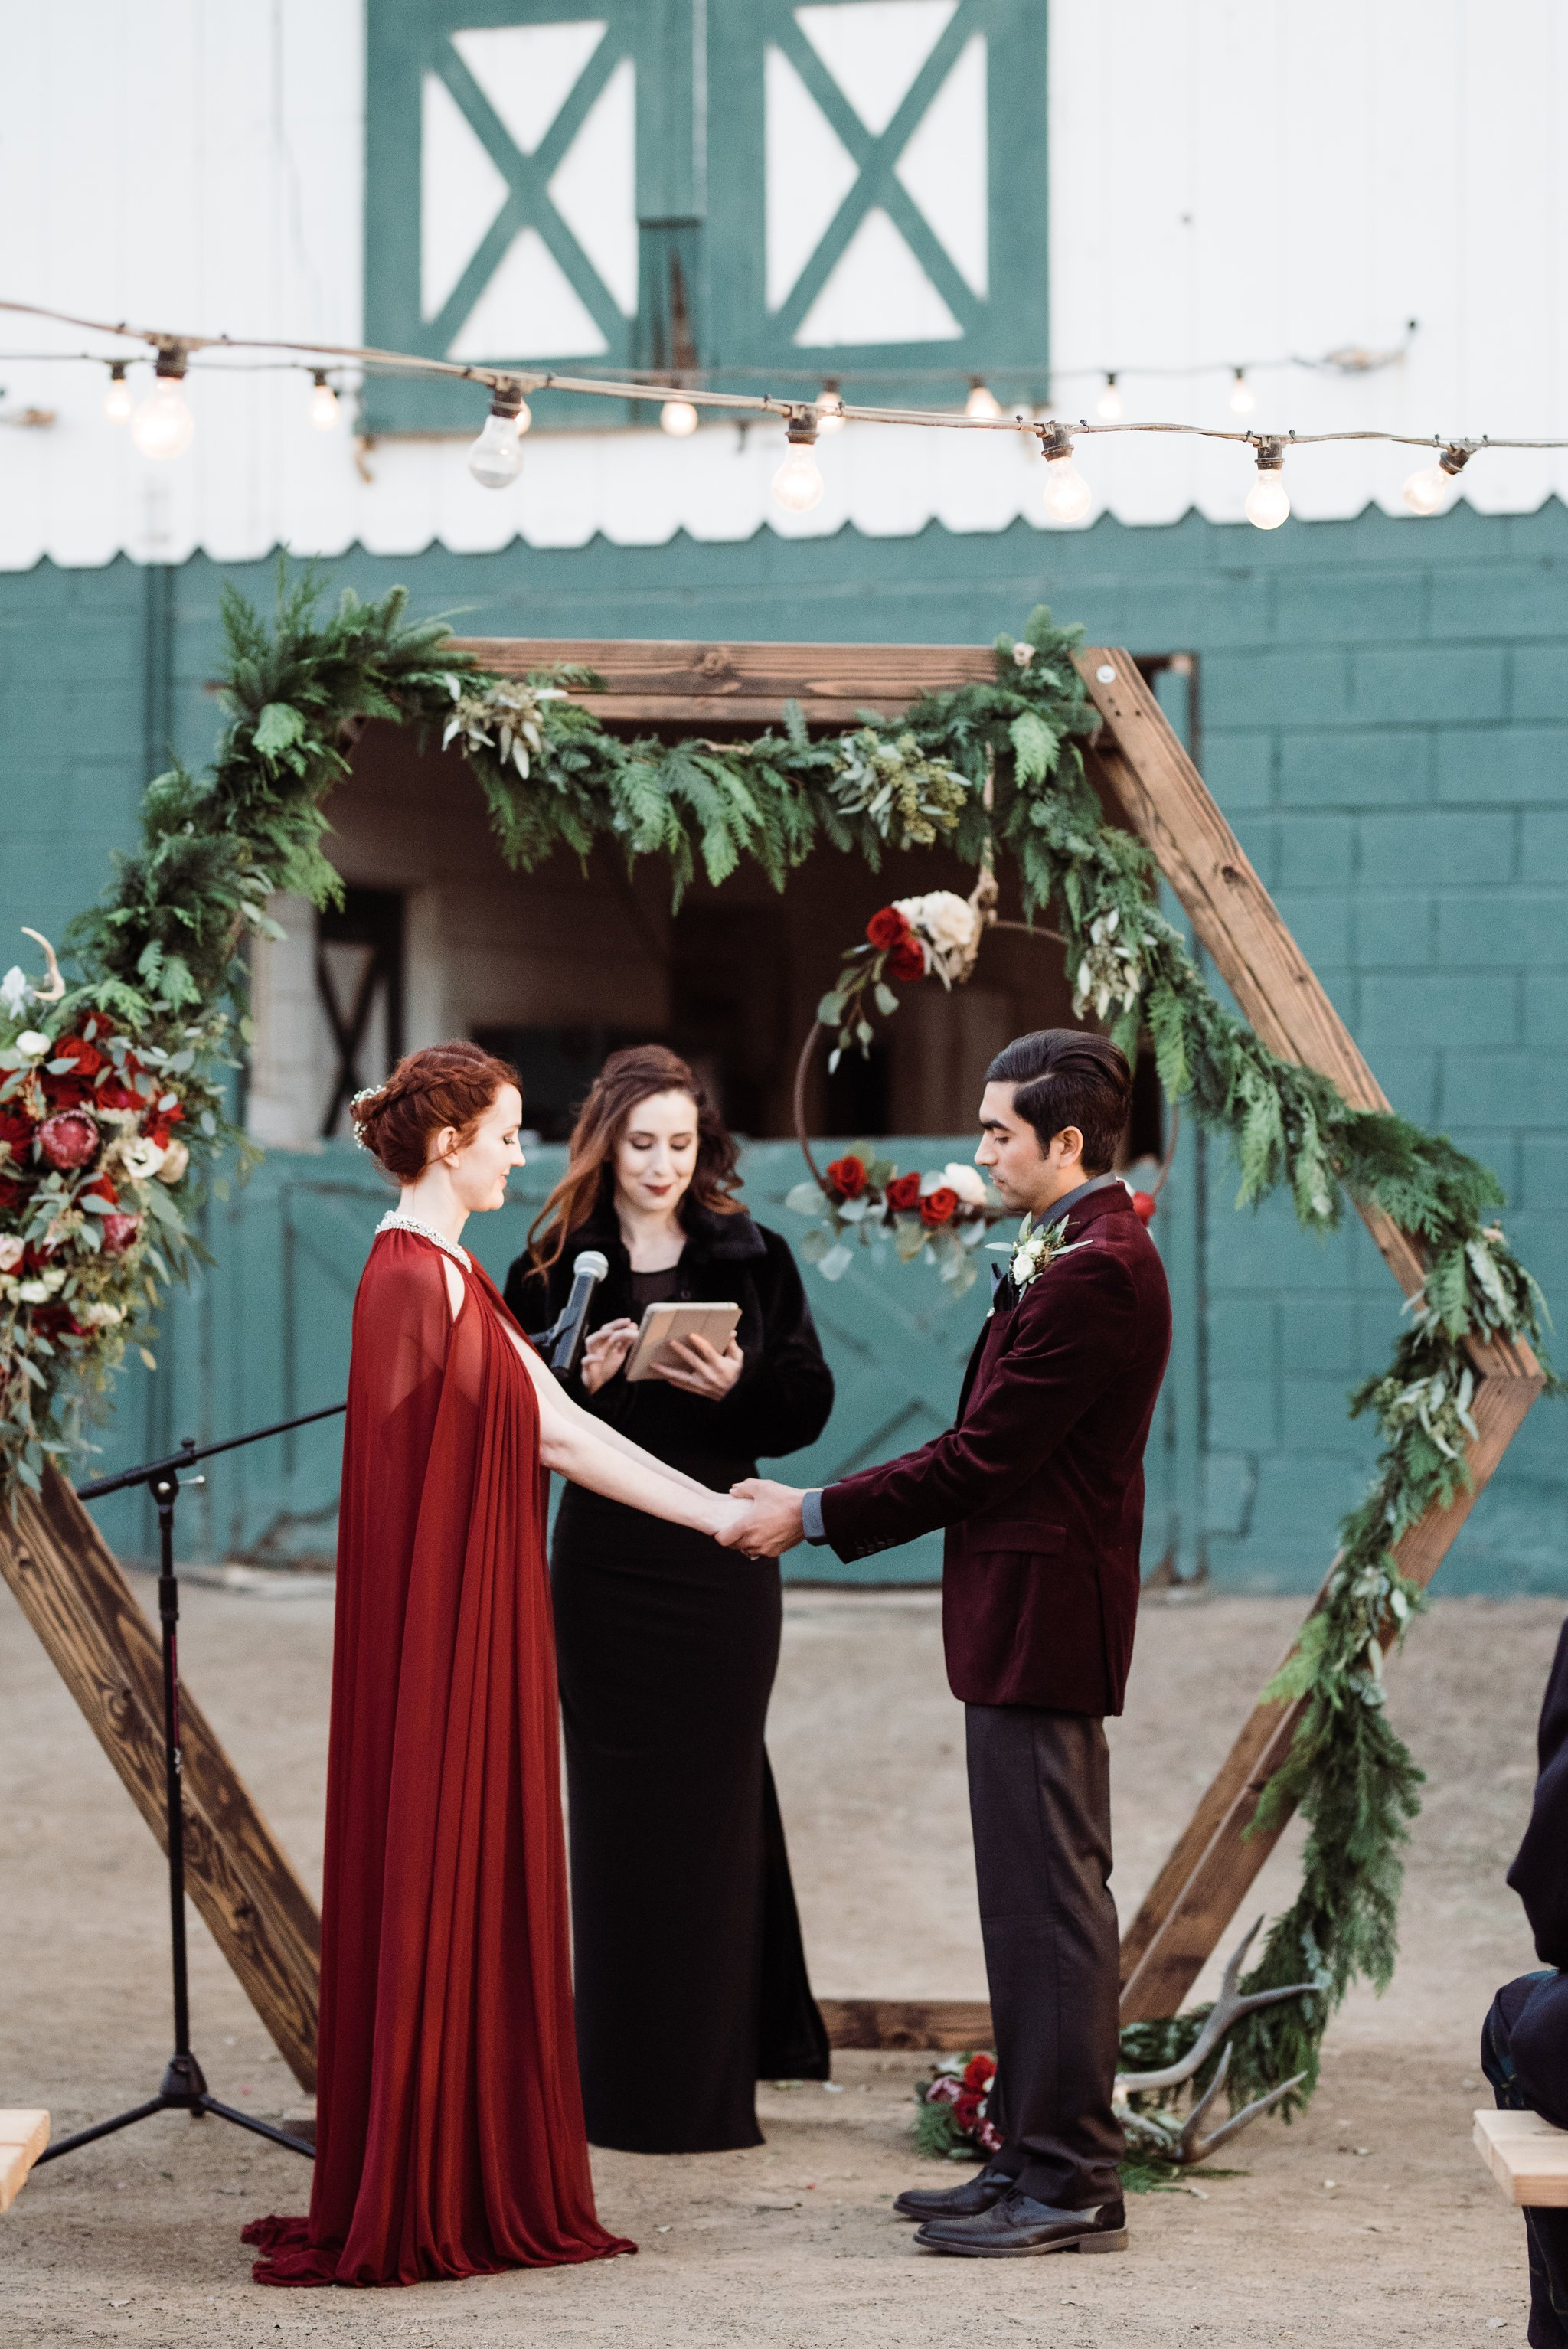 Wood Geometric Ceremony Arch Rental Circle Ceremony Arch Rental San Diego